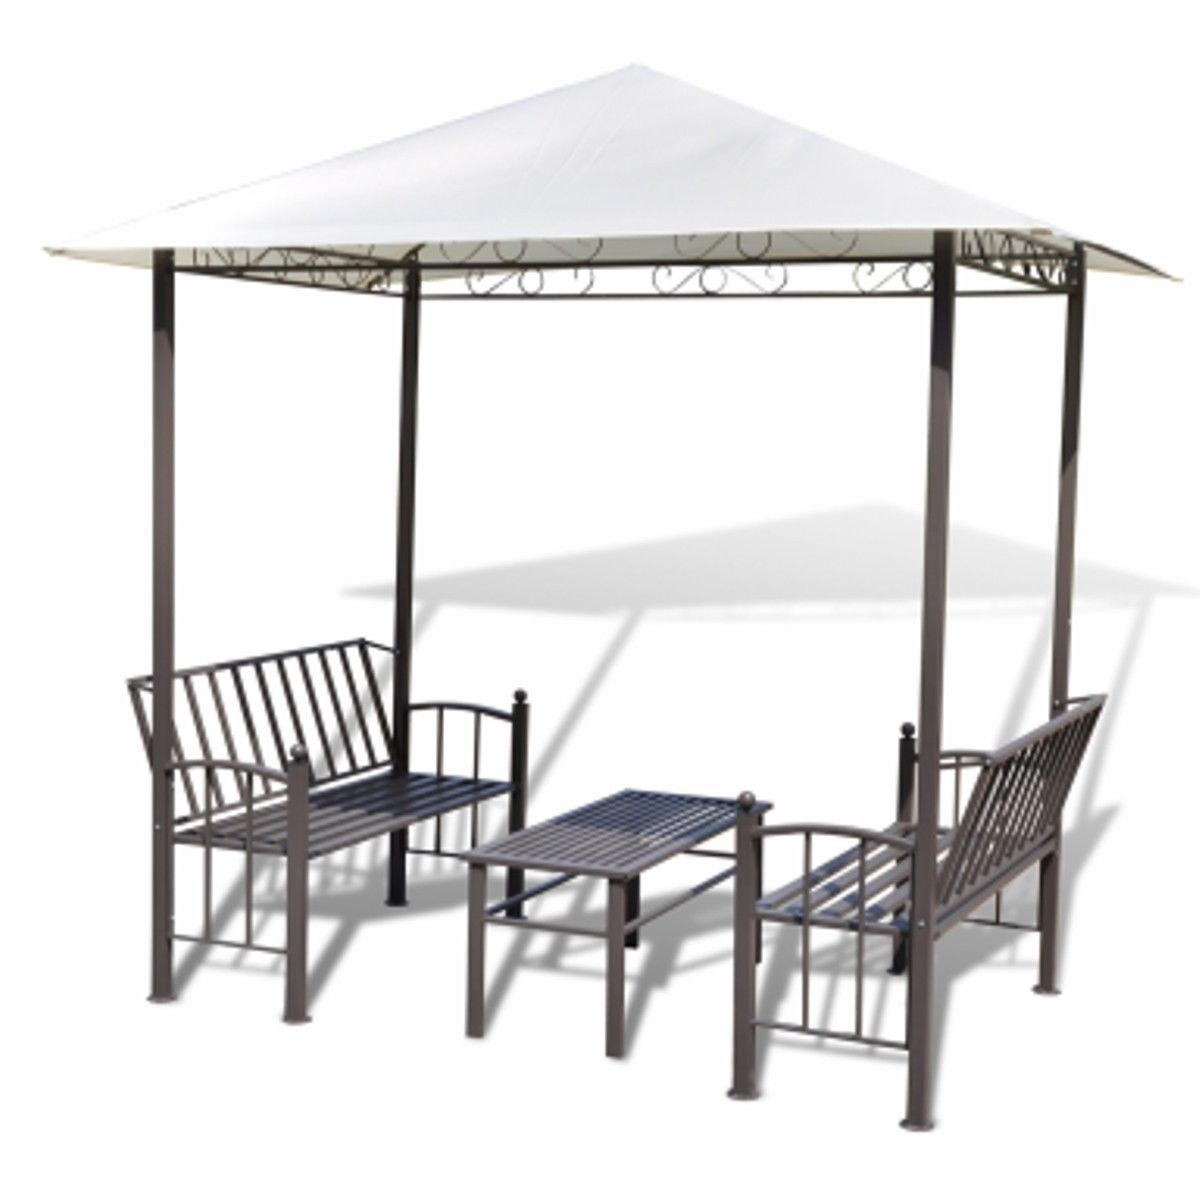 Outdoor Canopy #Gazebo Patio Furniture Set Backyard Table And Chairs  Loveseat